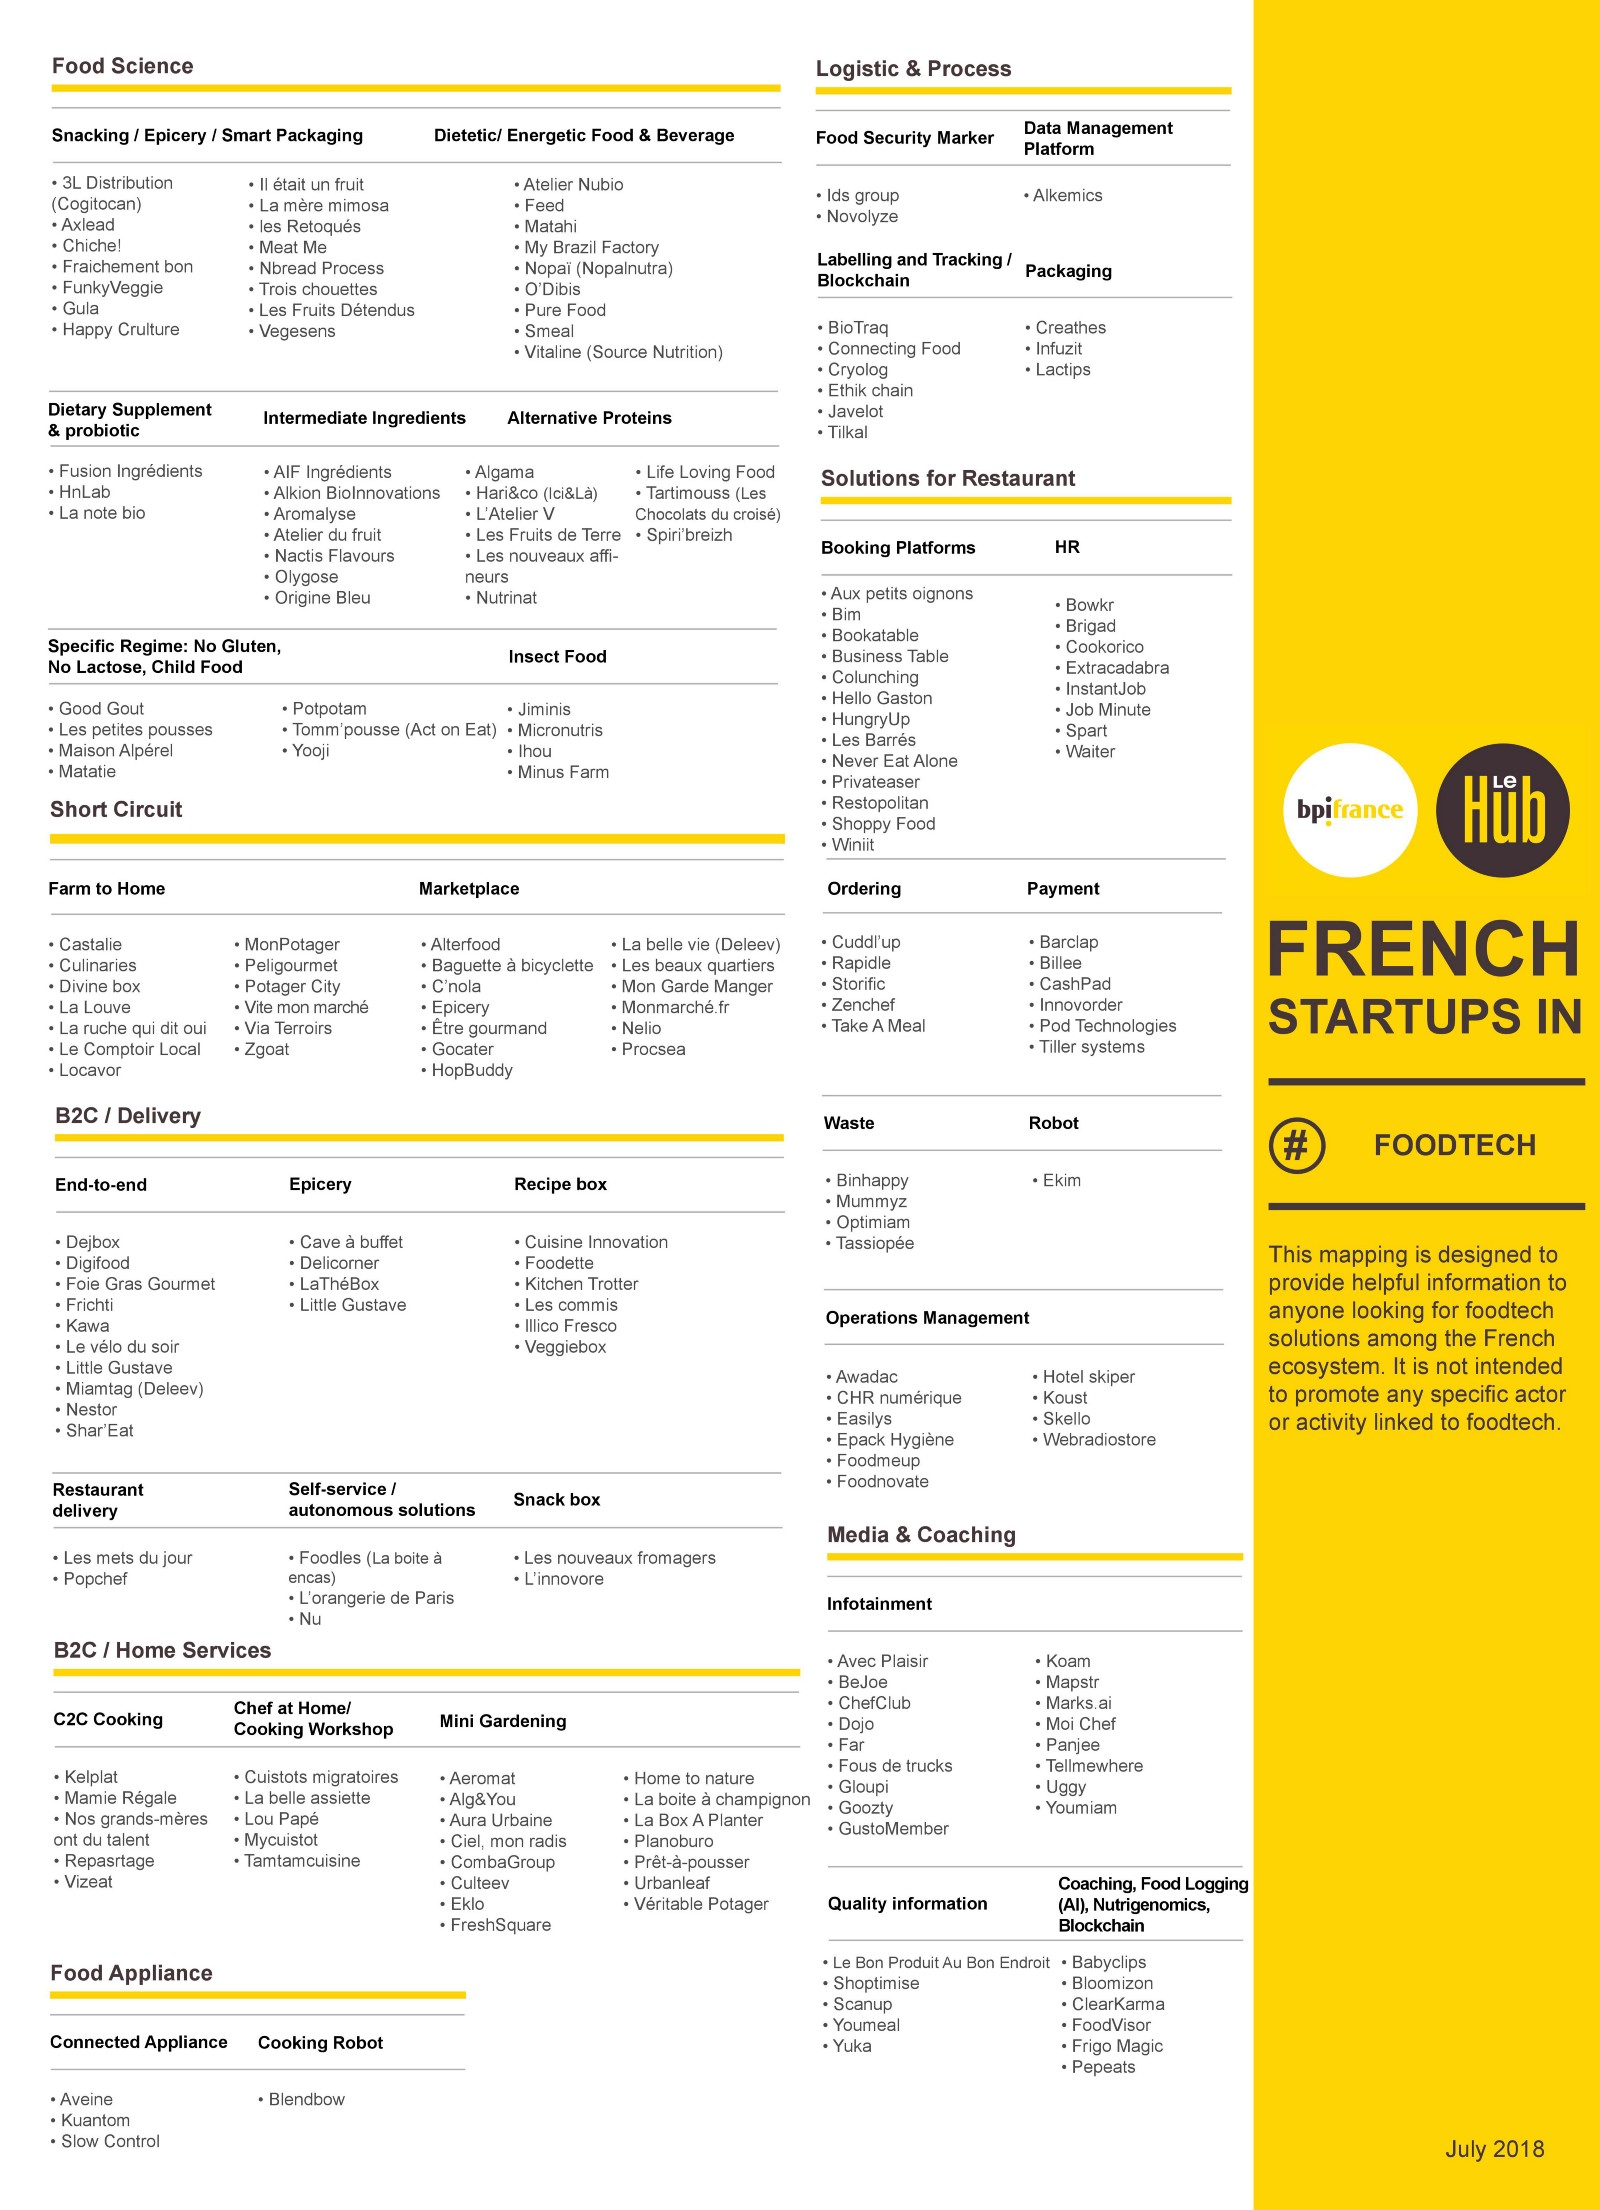 FoodTech ecosystem by Le Hub Bpifrance (230+ startups — not exhaustive)